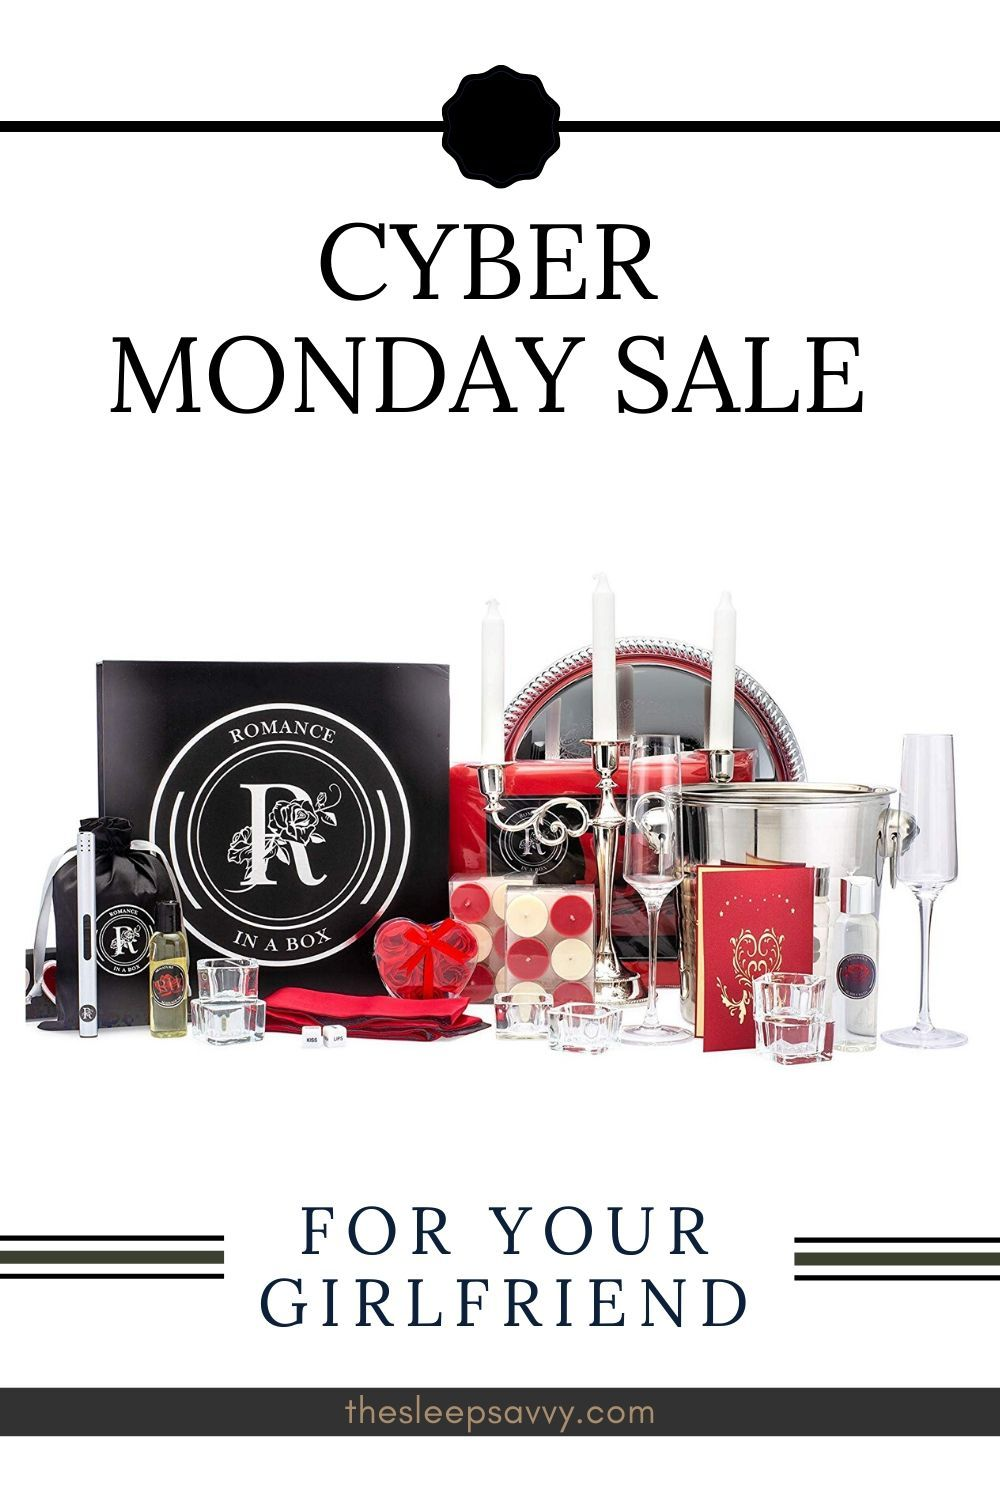 Cyber monday sale girlfriend gifts valentine day gifts